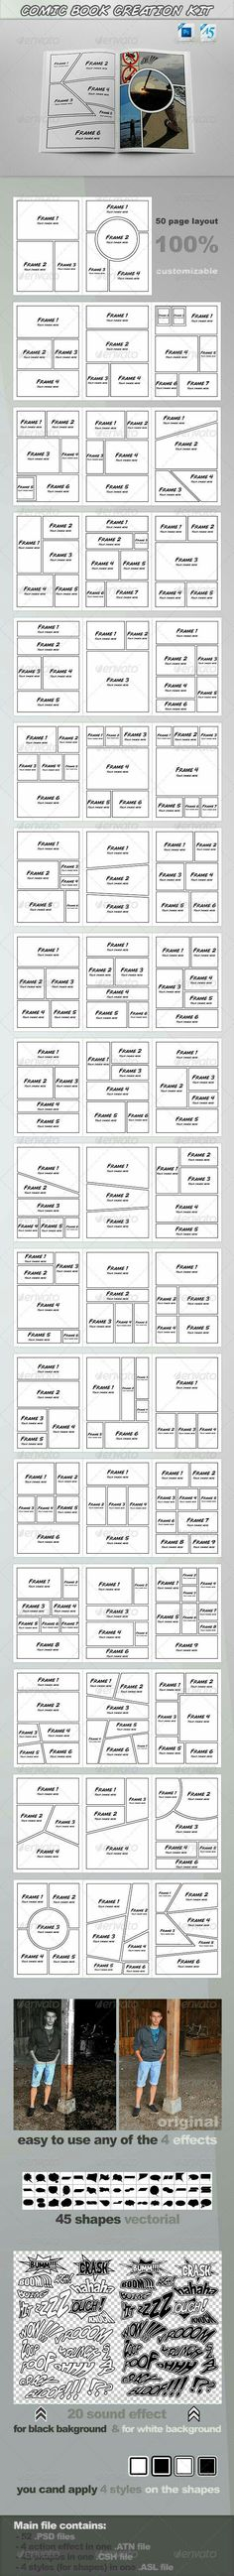 ComicBook Creation Kit Detail: 50 page templates size) & sound effects (two tipe , for black & white background) in 52 . Comic Book Layout, Comic Books Art, Book Art, Comic Art, Doodle Drawing, Manga Drawing, Drawing Tips, Comic Tutorial, Web Design